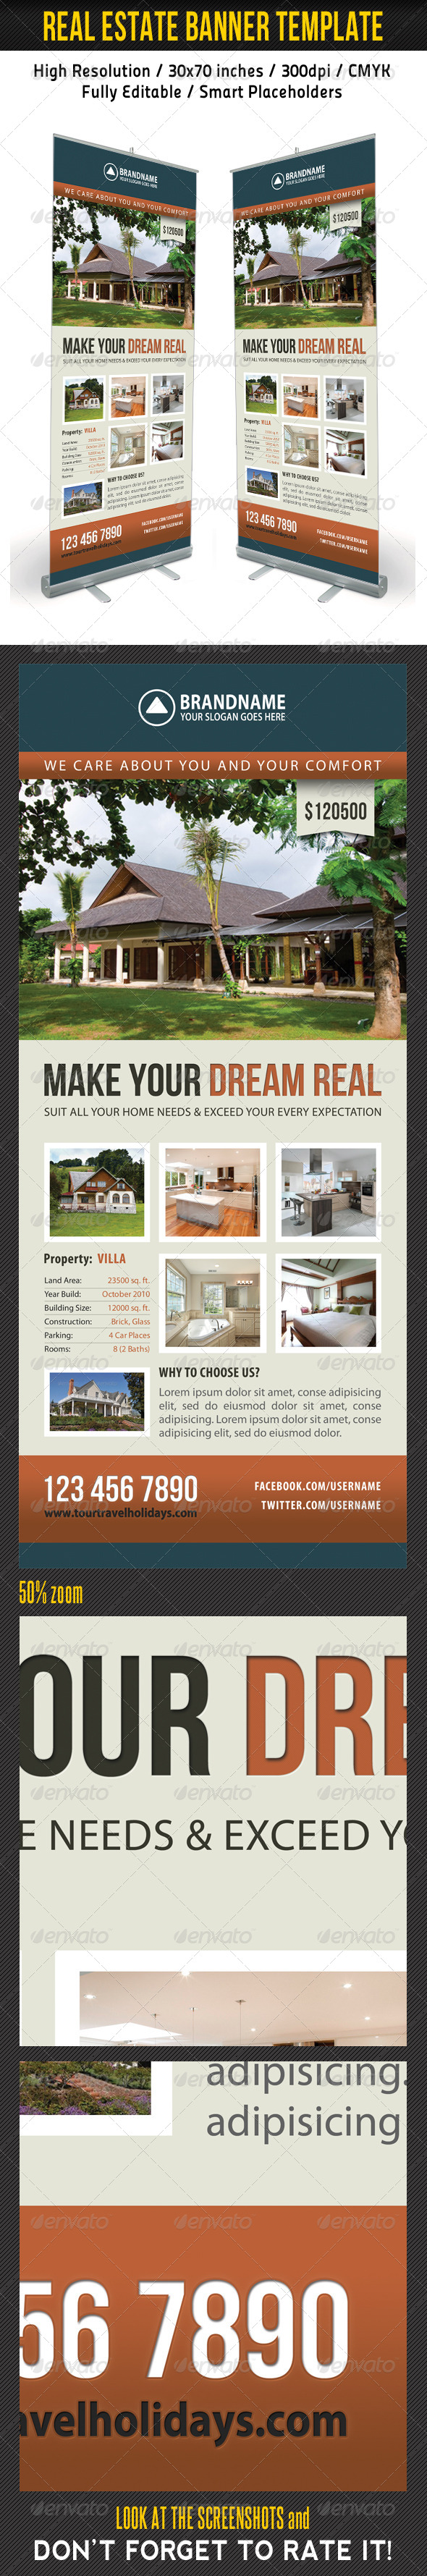 Real Estate Banner Template 06 - Signage Print Templates